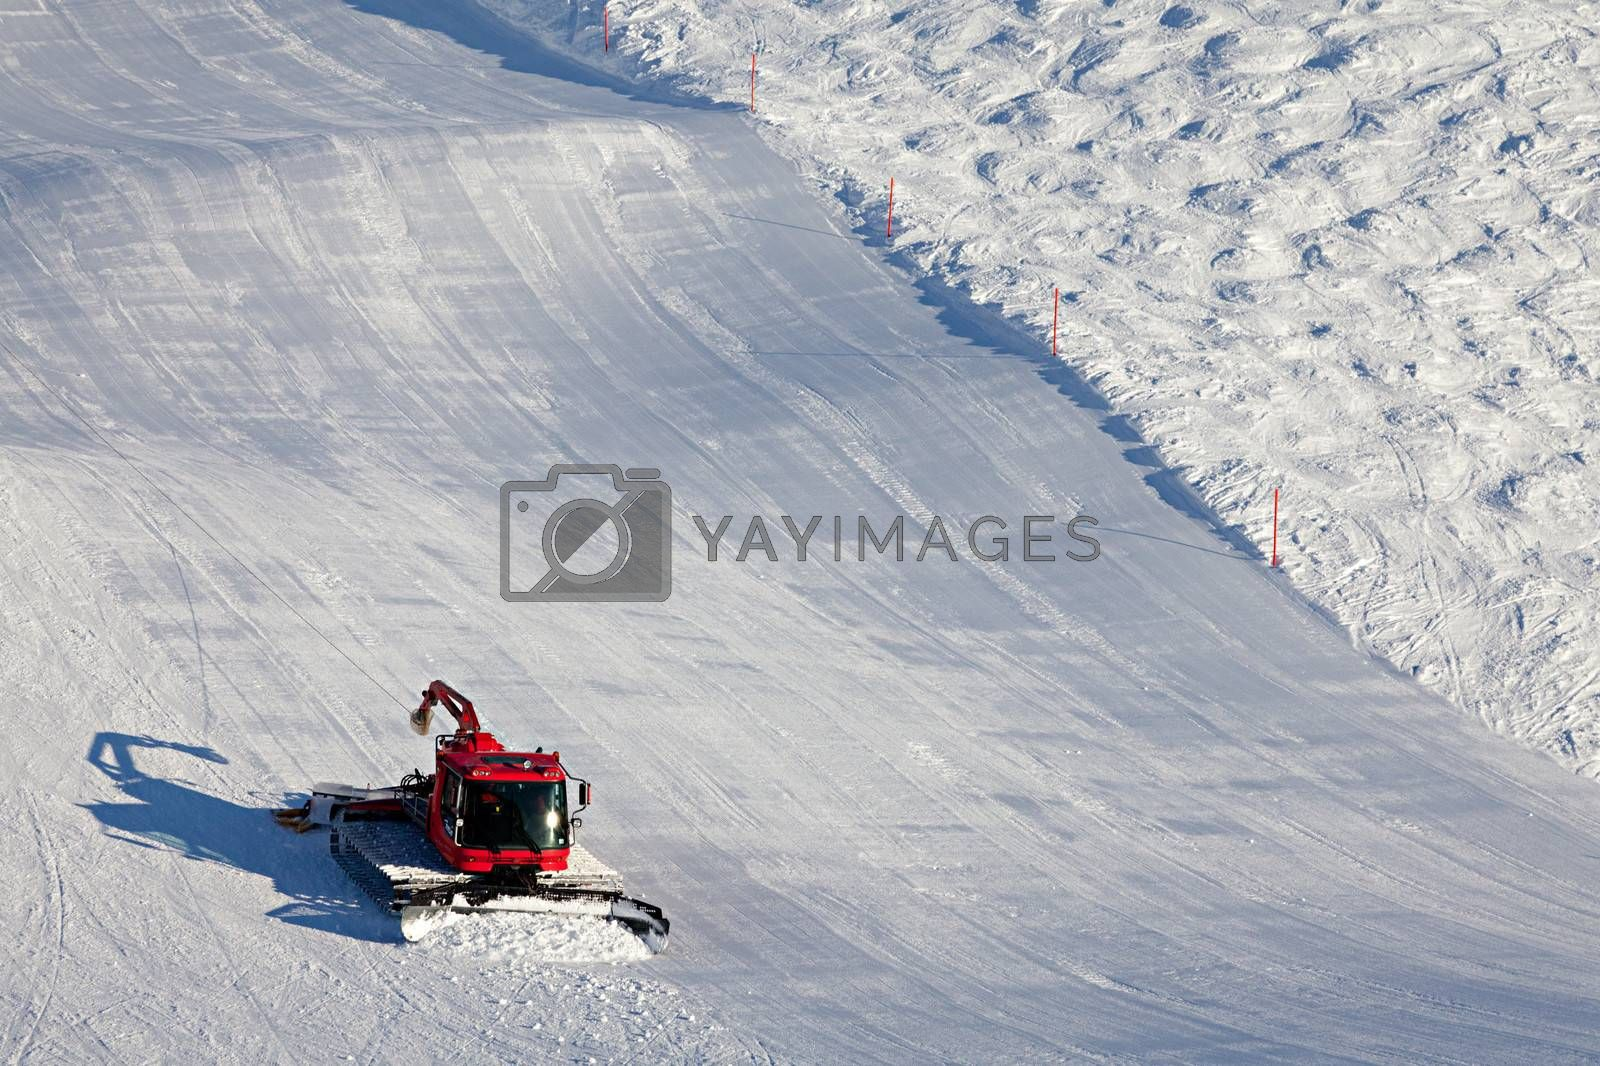 Ski slopes maintenance on the mountains in the Swiss Alps.